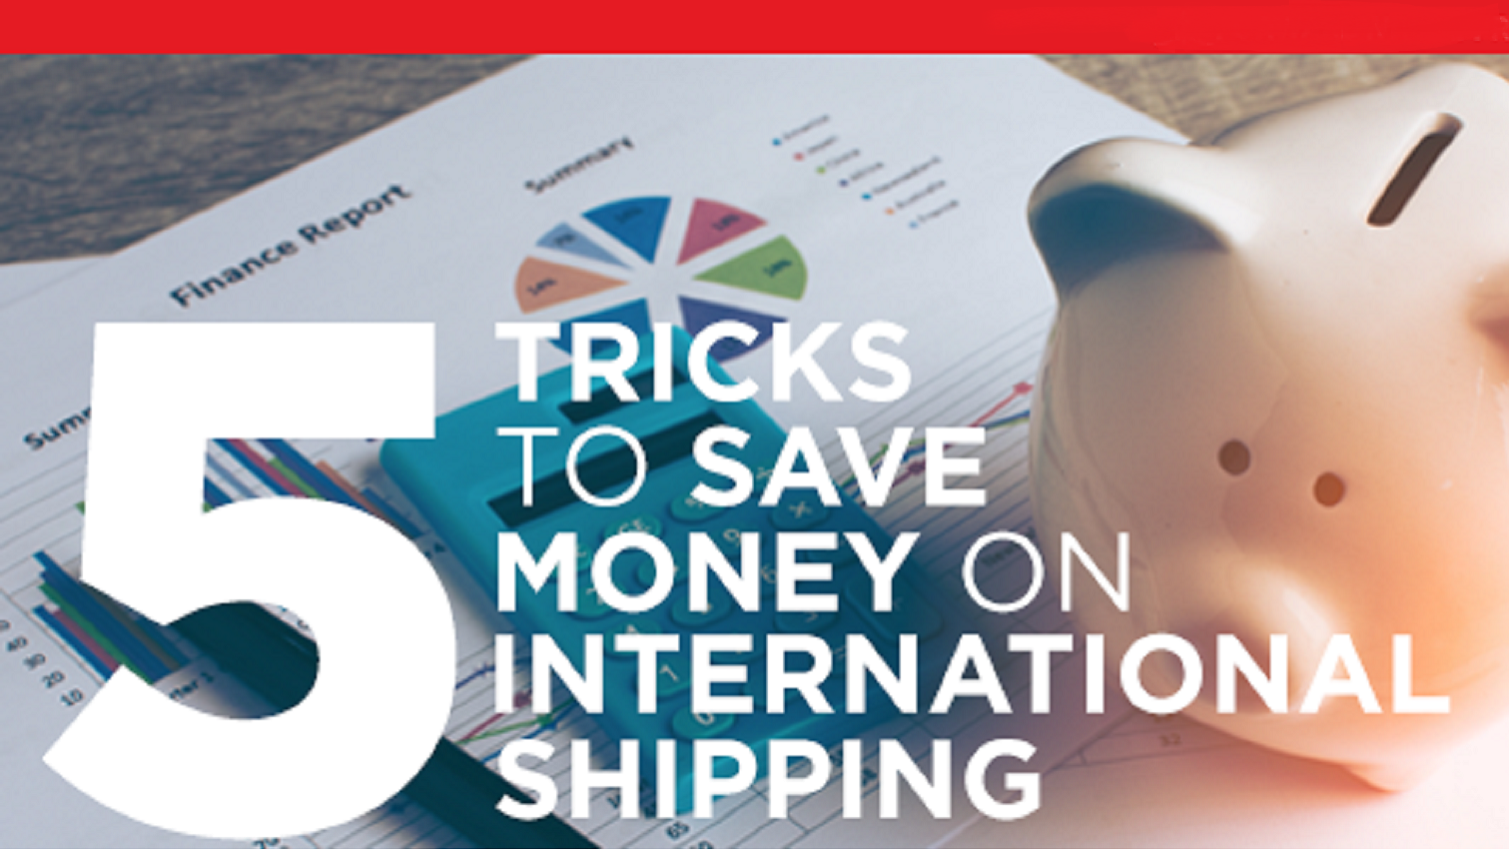 Best tips to save money on international shipping